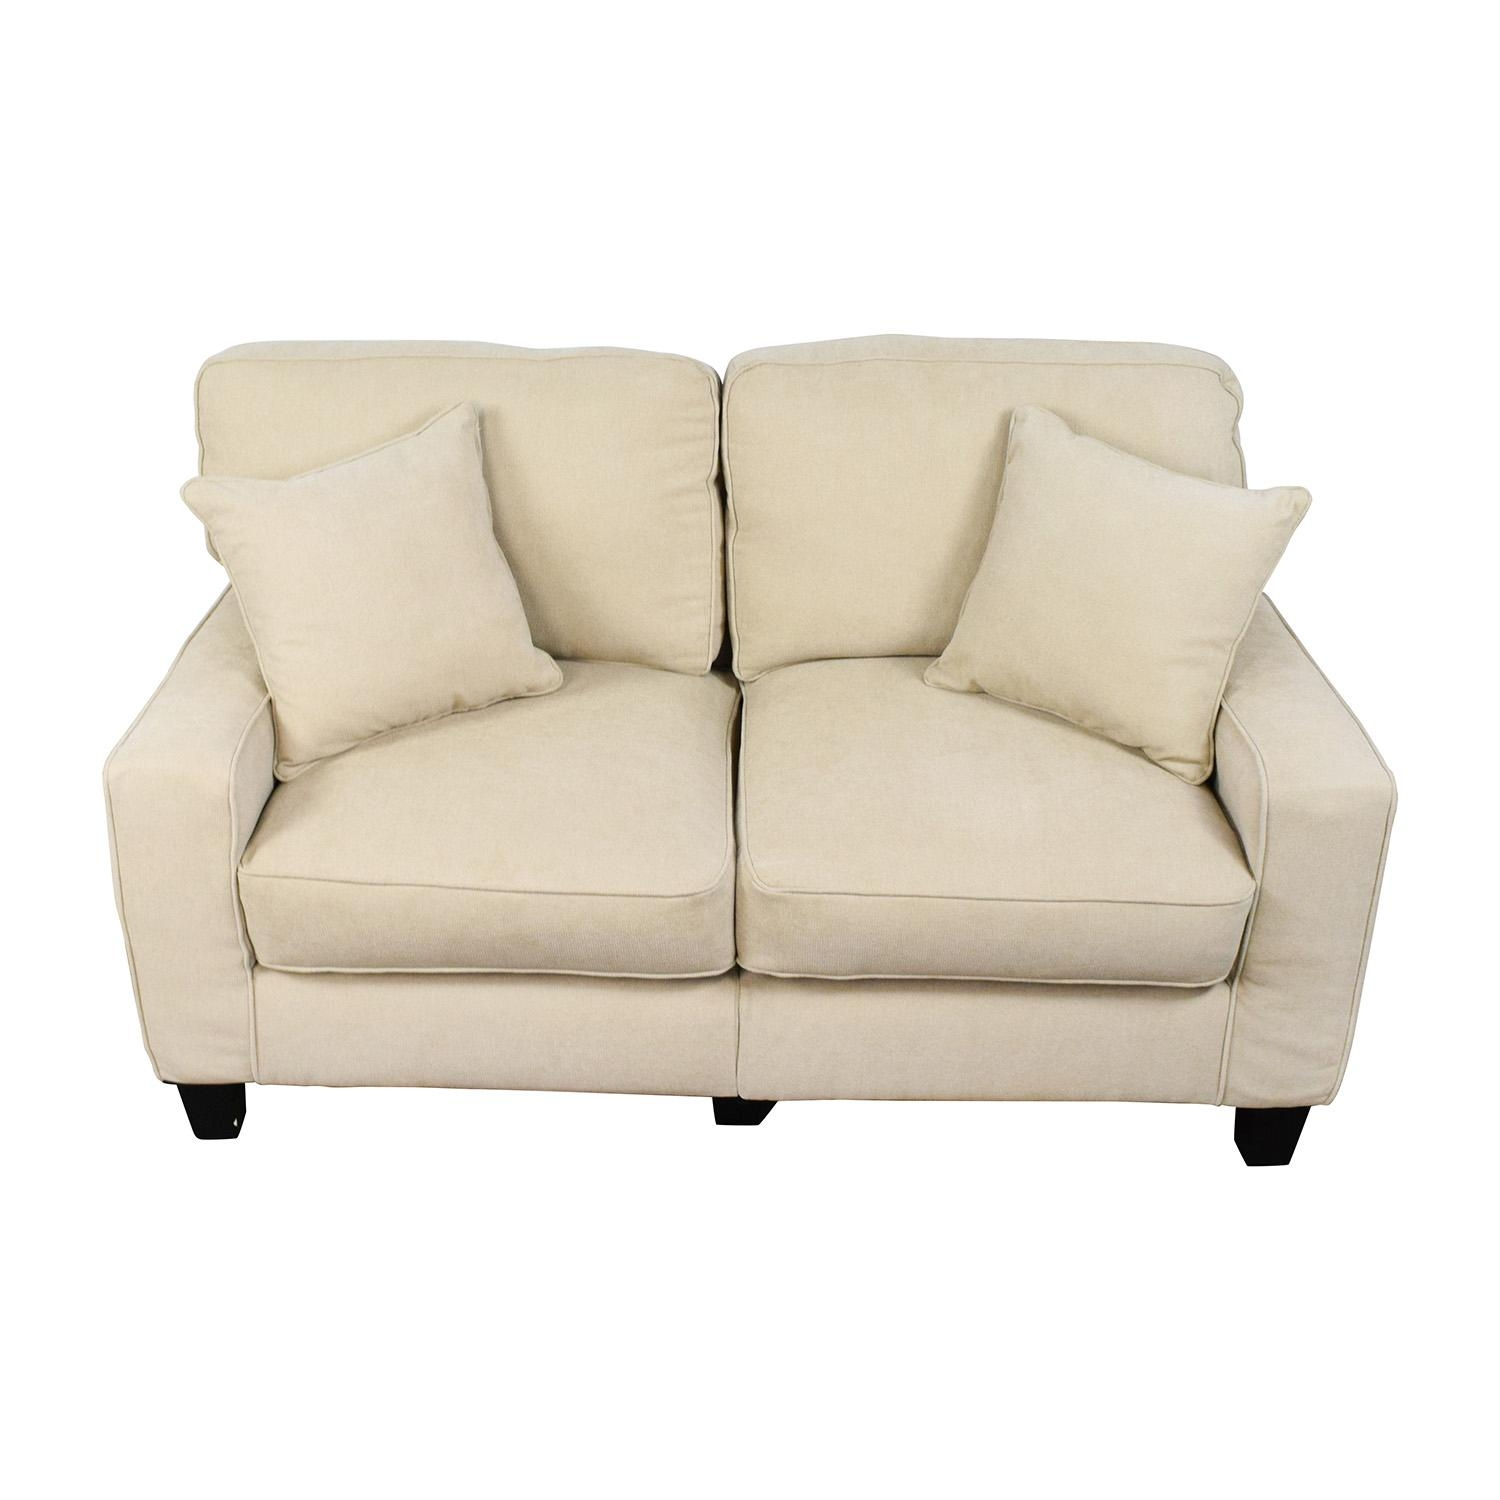 Furniture: Stunning Pier One Loveseat For Perfect Living Room Within Pier 1 Sofa Beds (Image 17 of 20)